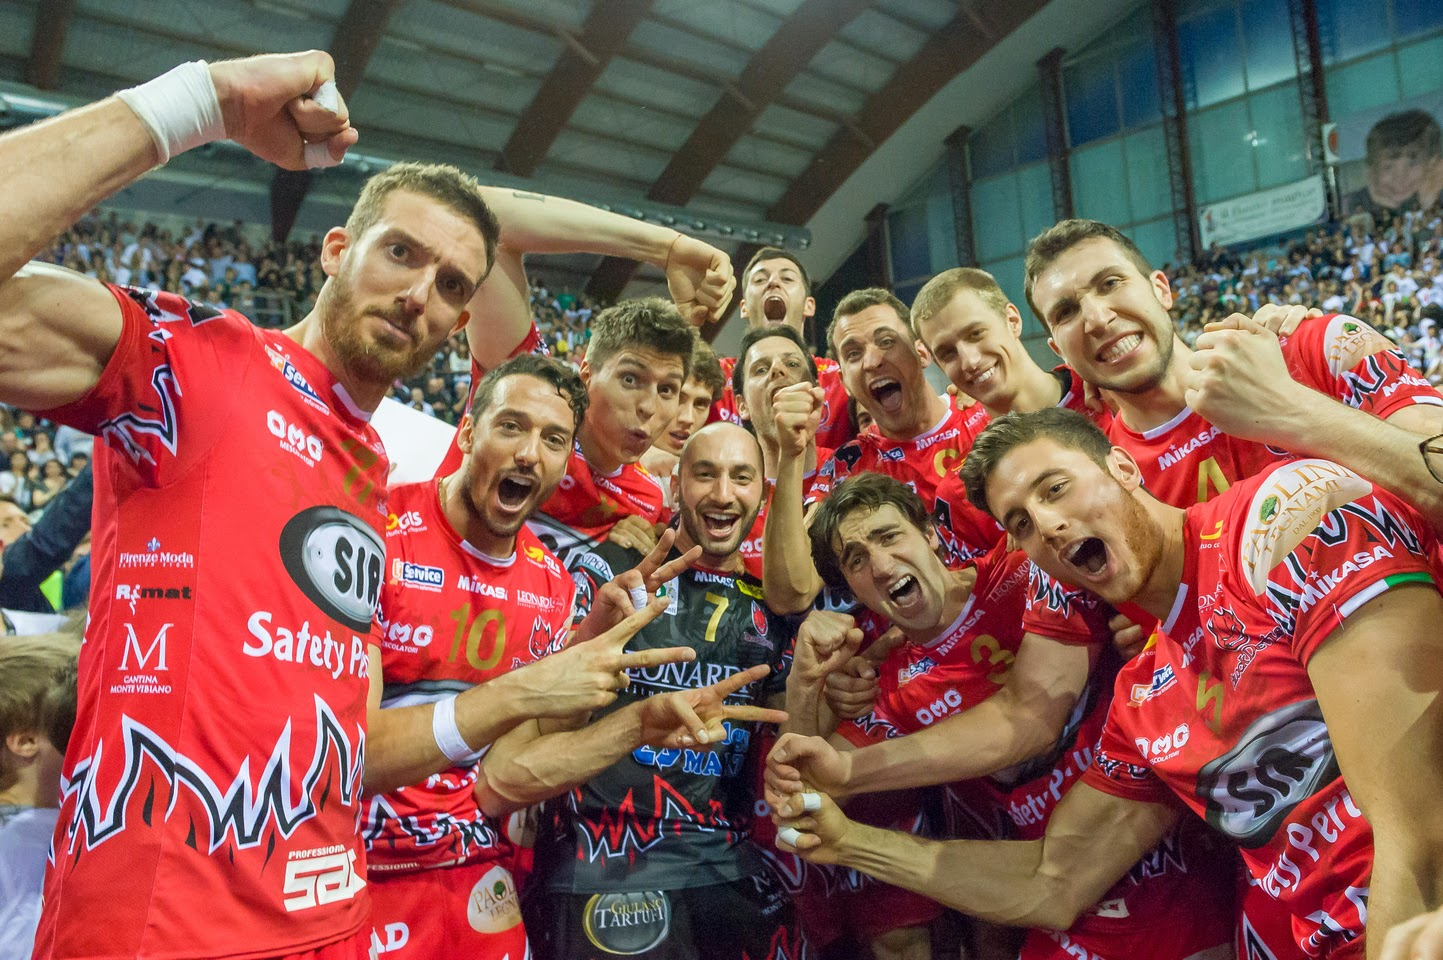 (fanta)VOLLEY Cenone Sir Safety, cipolla bandita dal menù